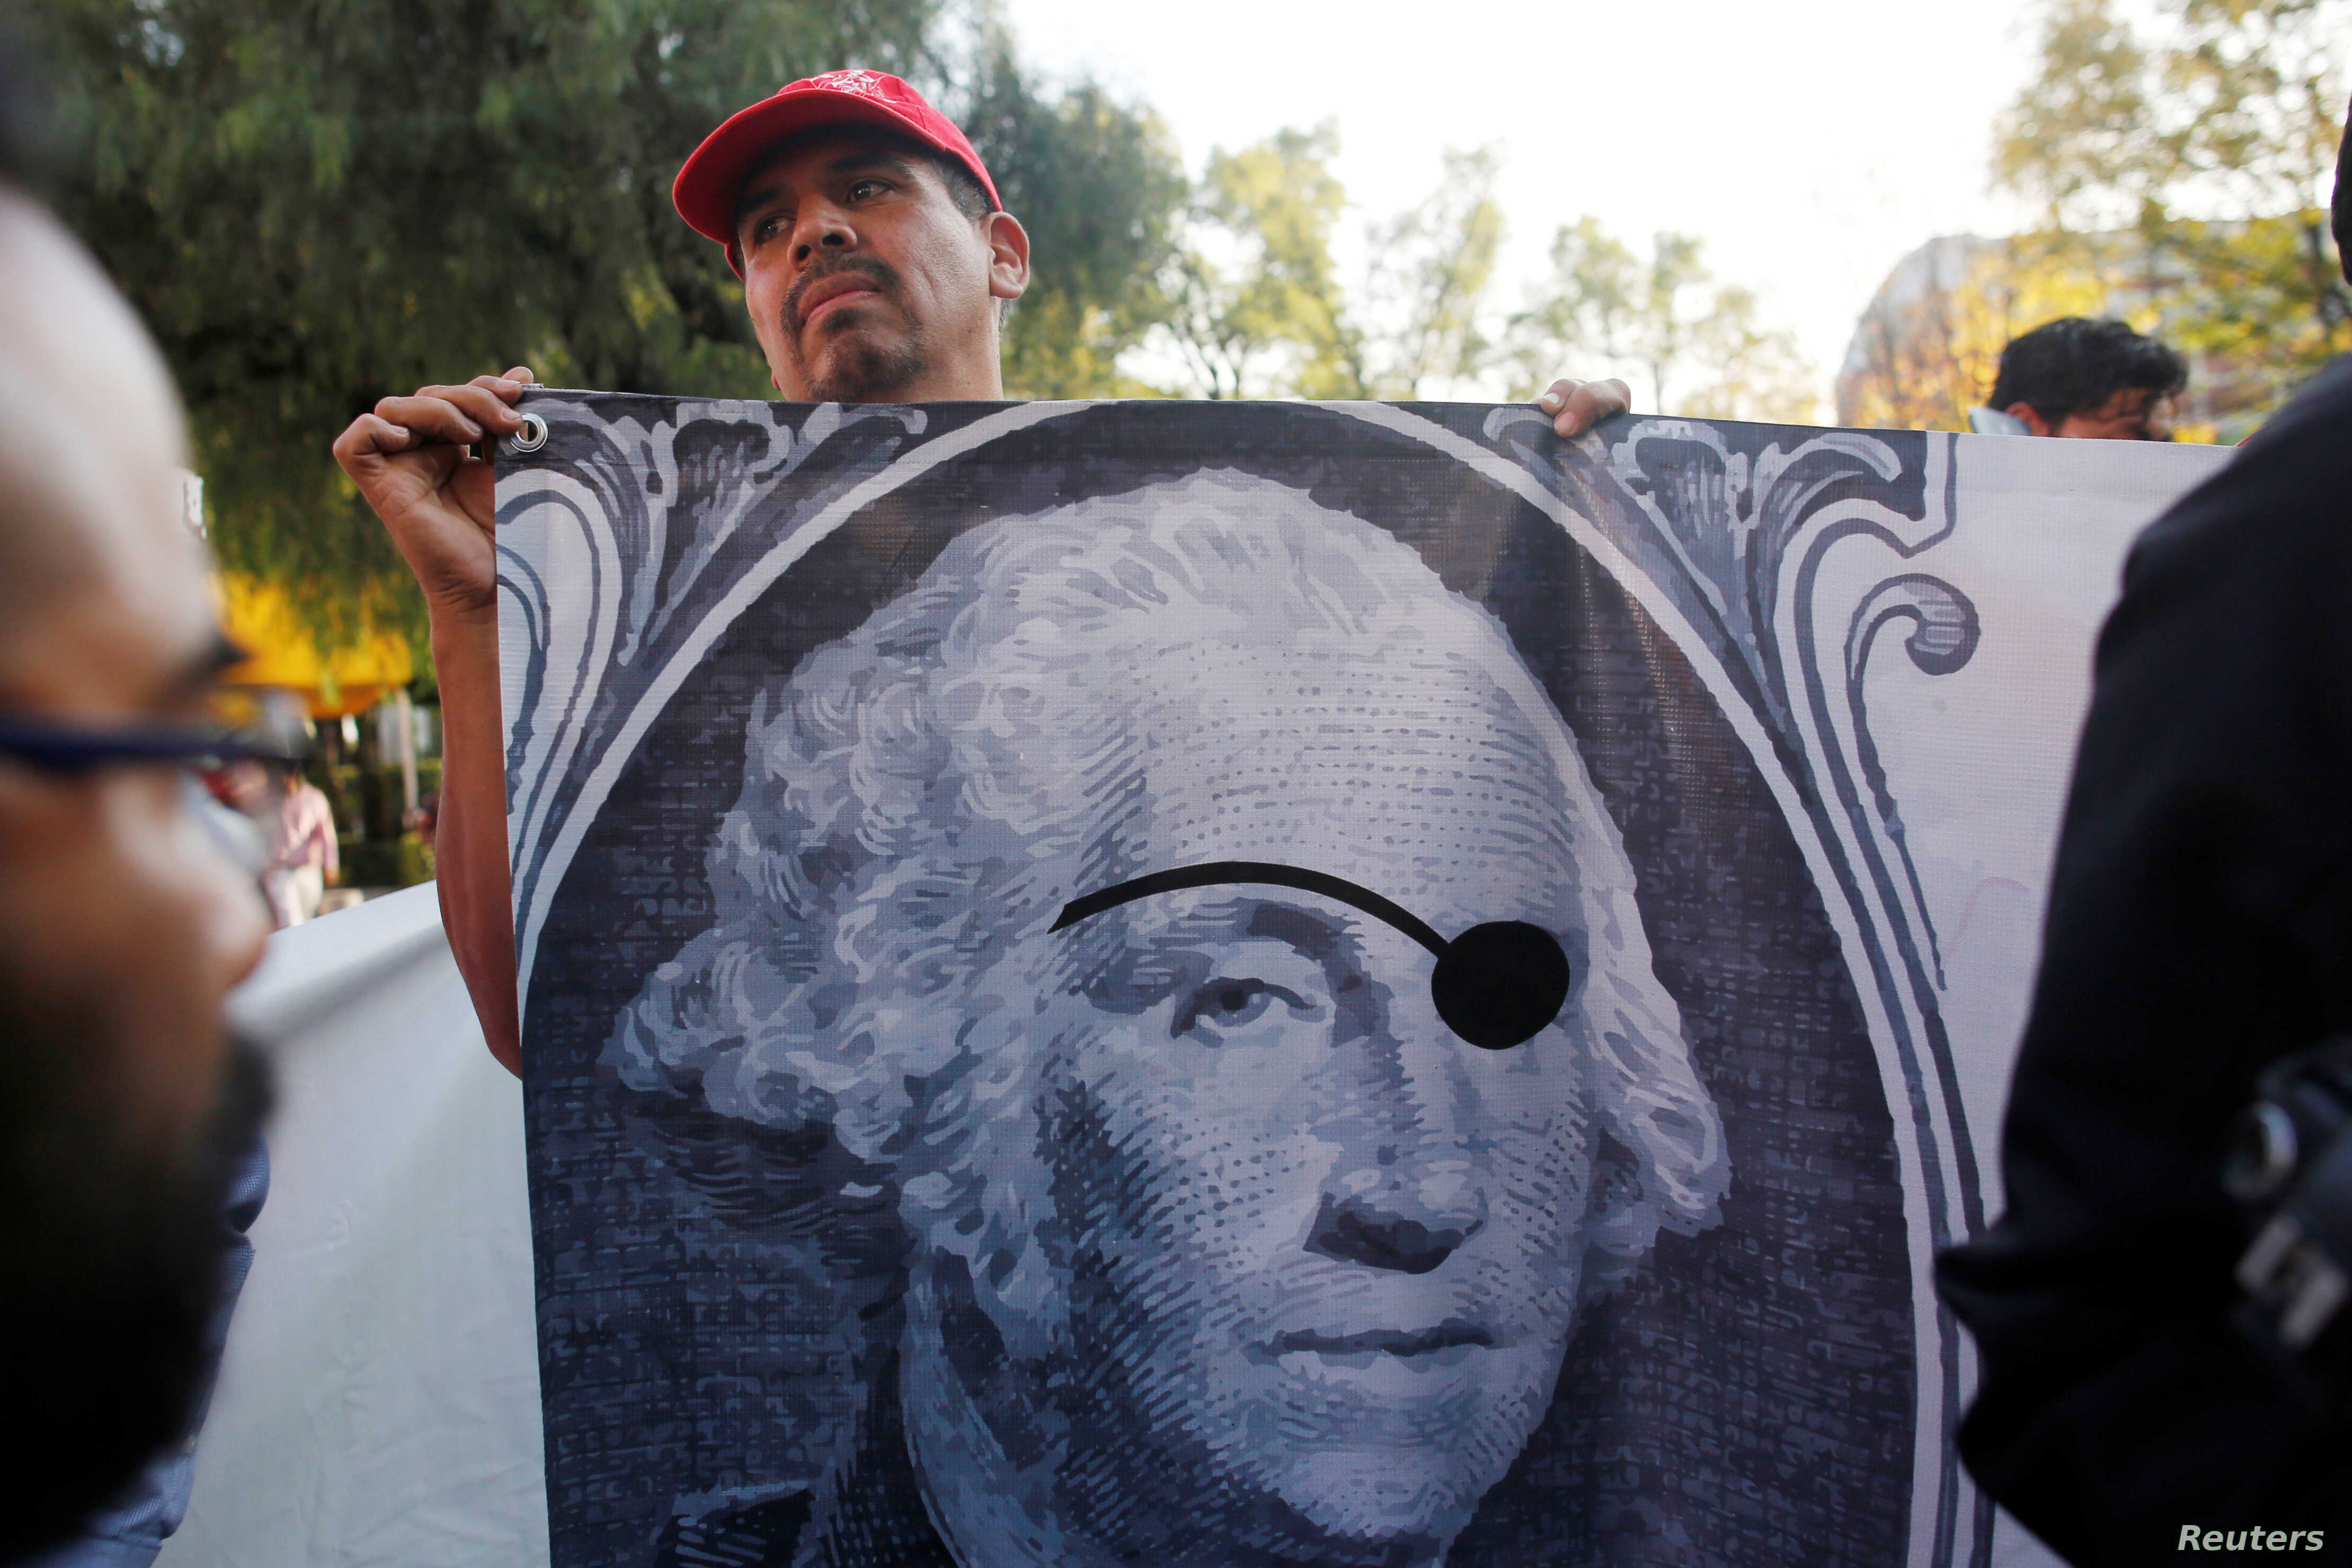 A union worker holds a banner during a protest against NAFTA negotiations outside the site of the fifth round of NAFTA talks involving the United States, Mexico and Canada in Mexico City, Nov. 17, 2017.